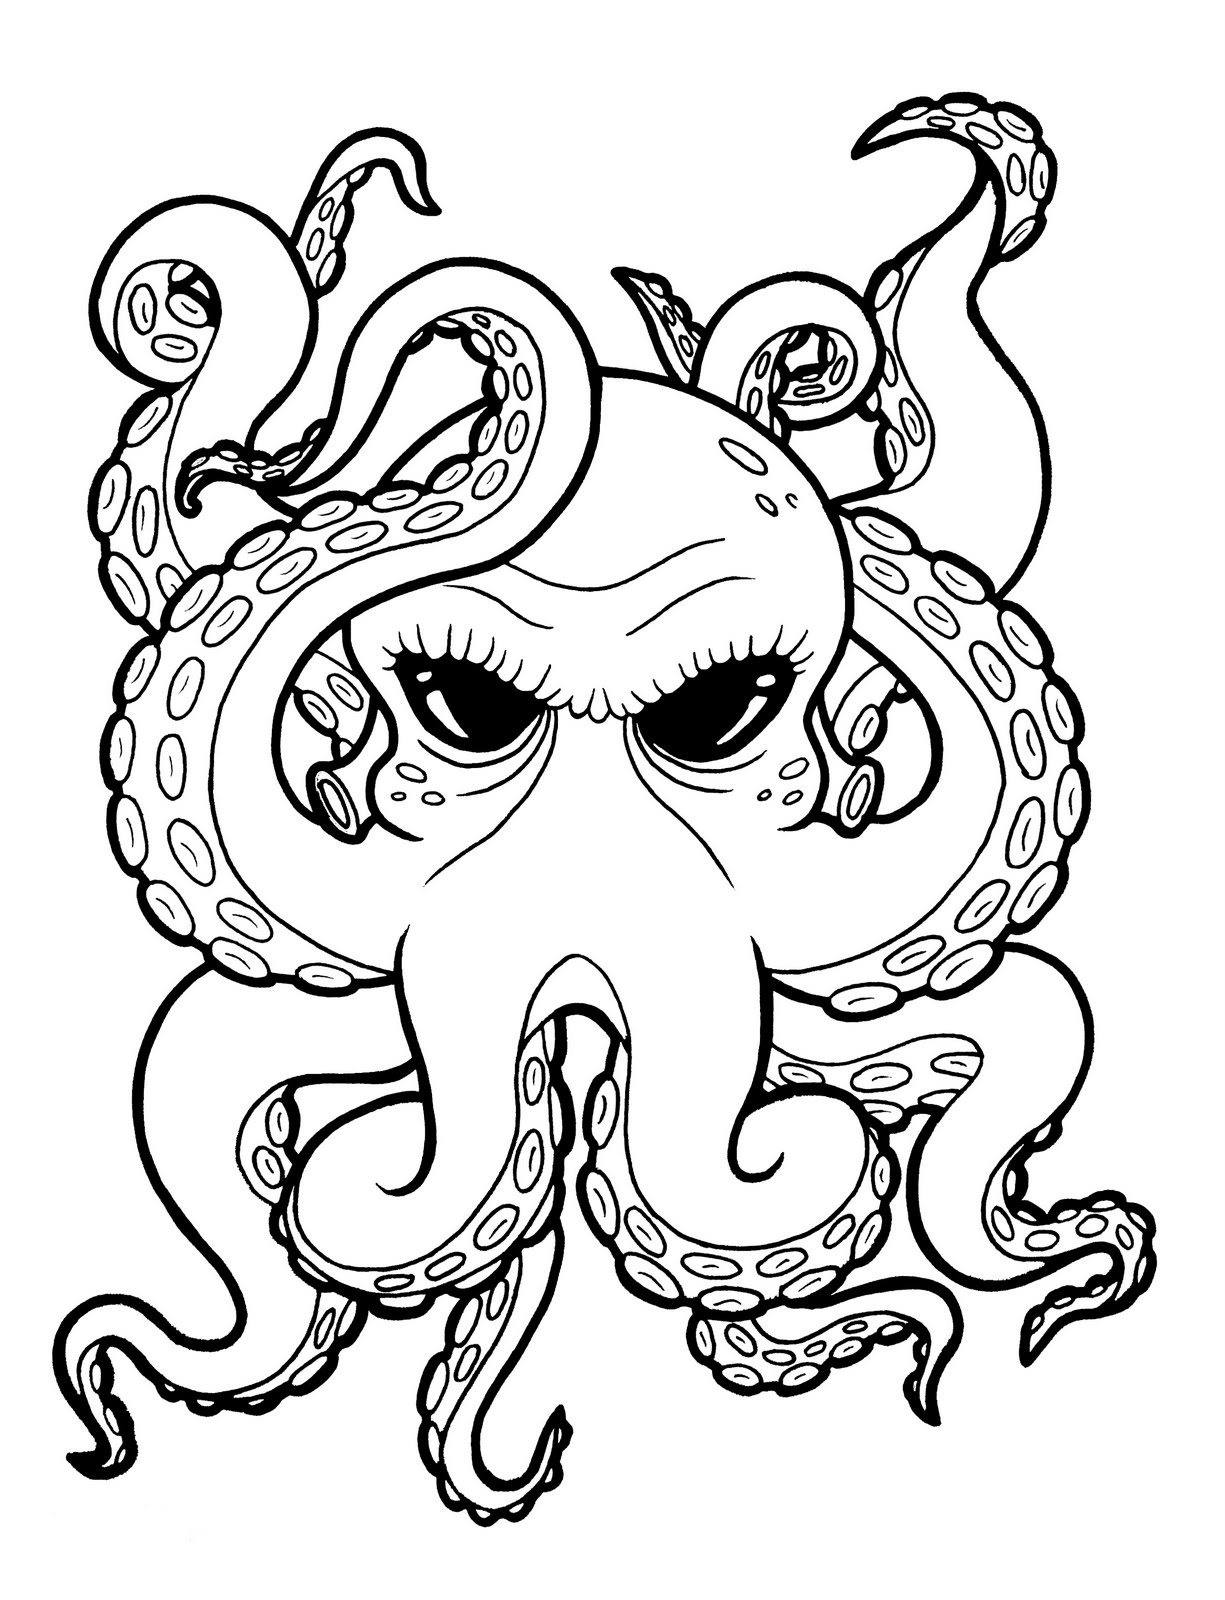 simple octopus drawing simple octopus drawing at paintingvalleycom explore drawing octopus simple